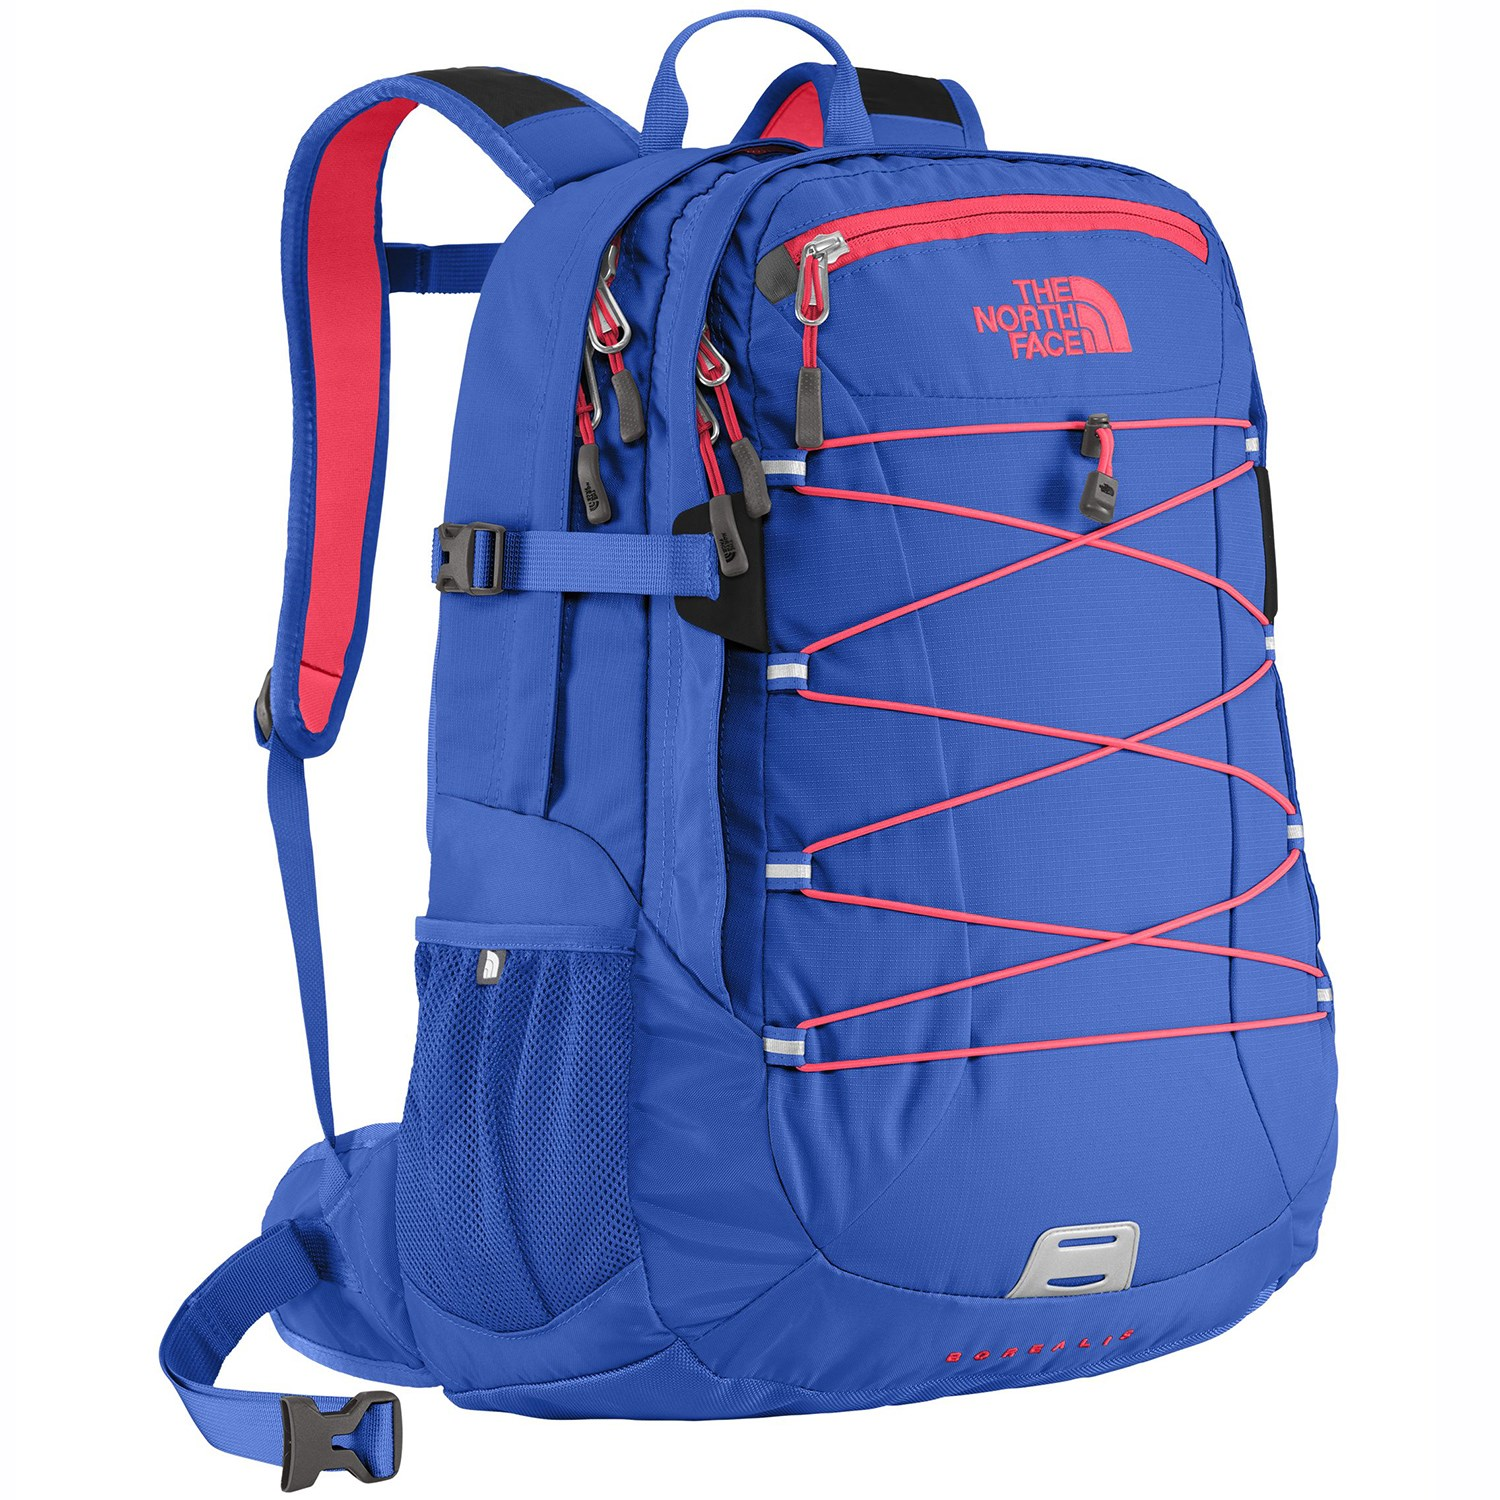 a4df1acad The North Face Borealis Backpack - Women's